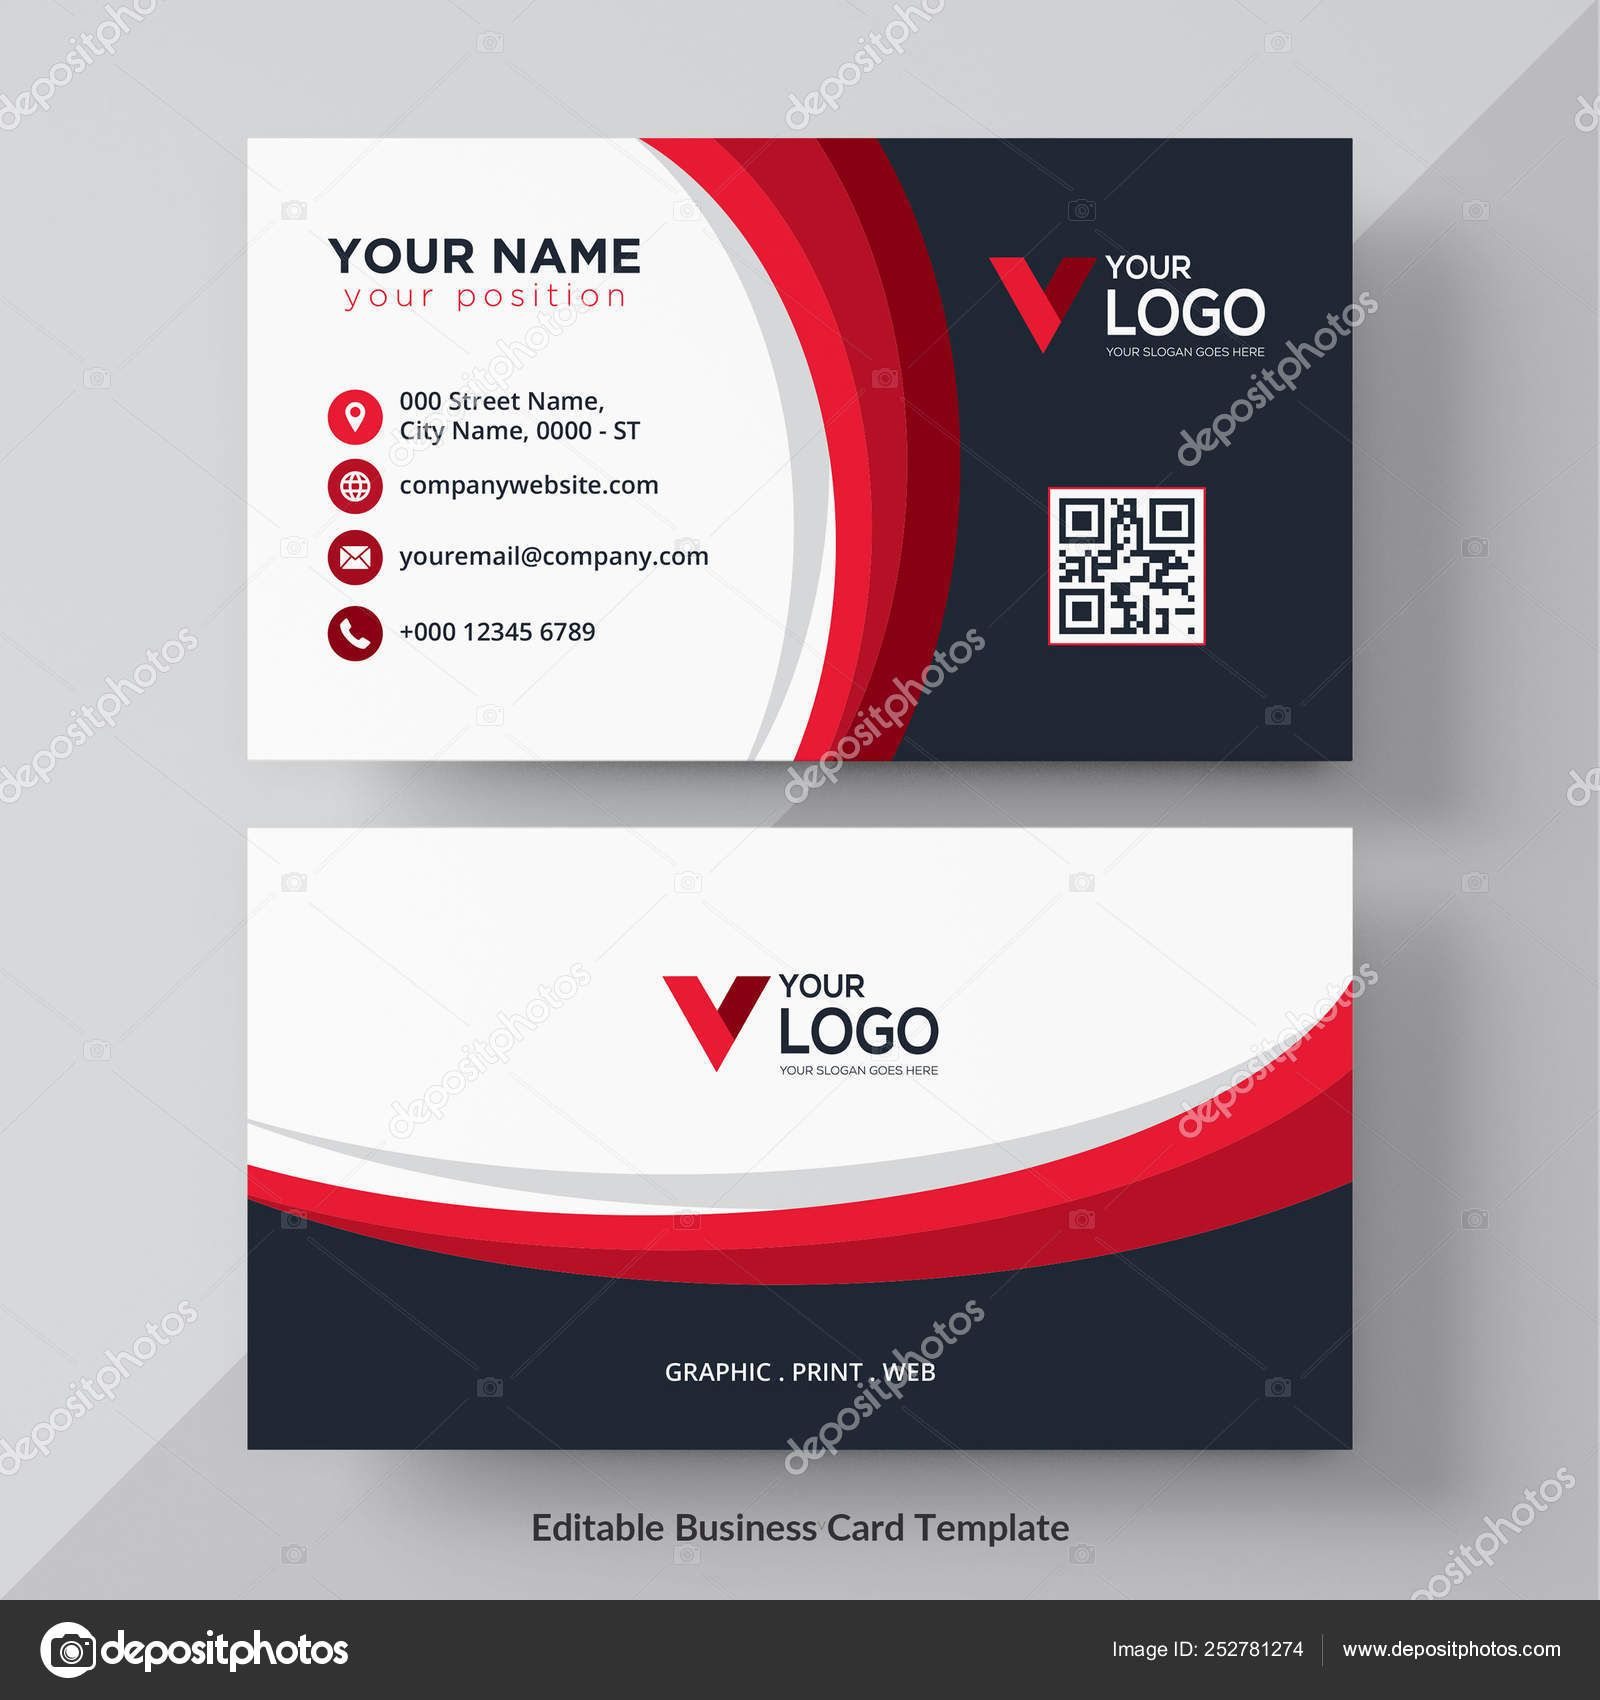 Download Modern Creative Business Card Name Card Horizontal